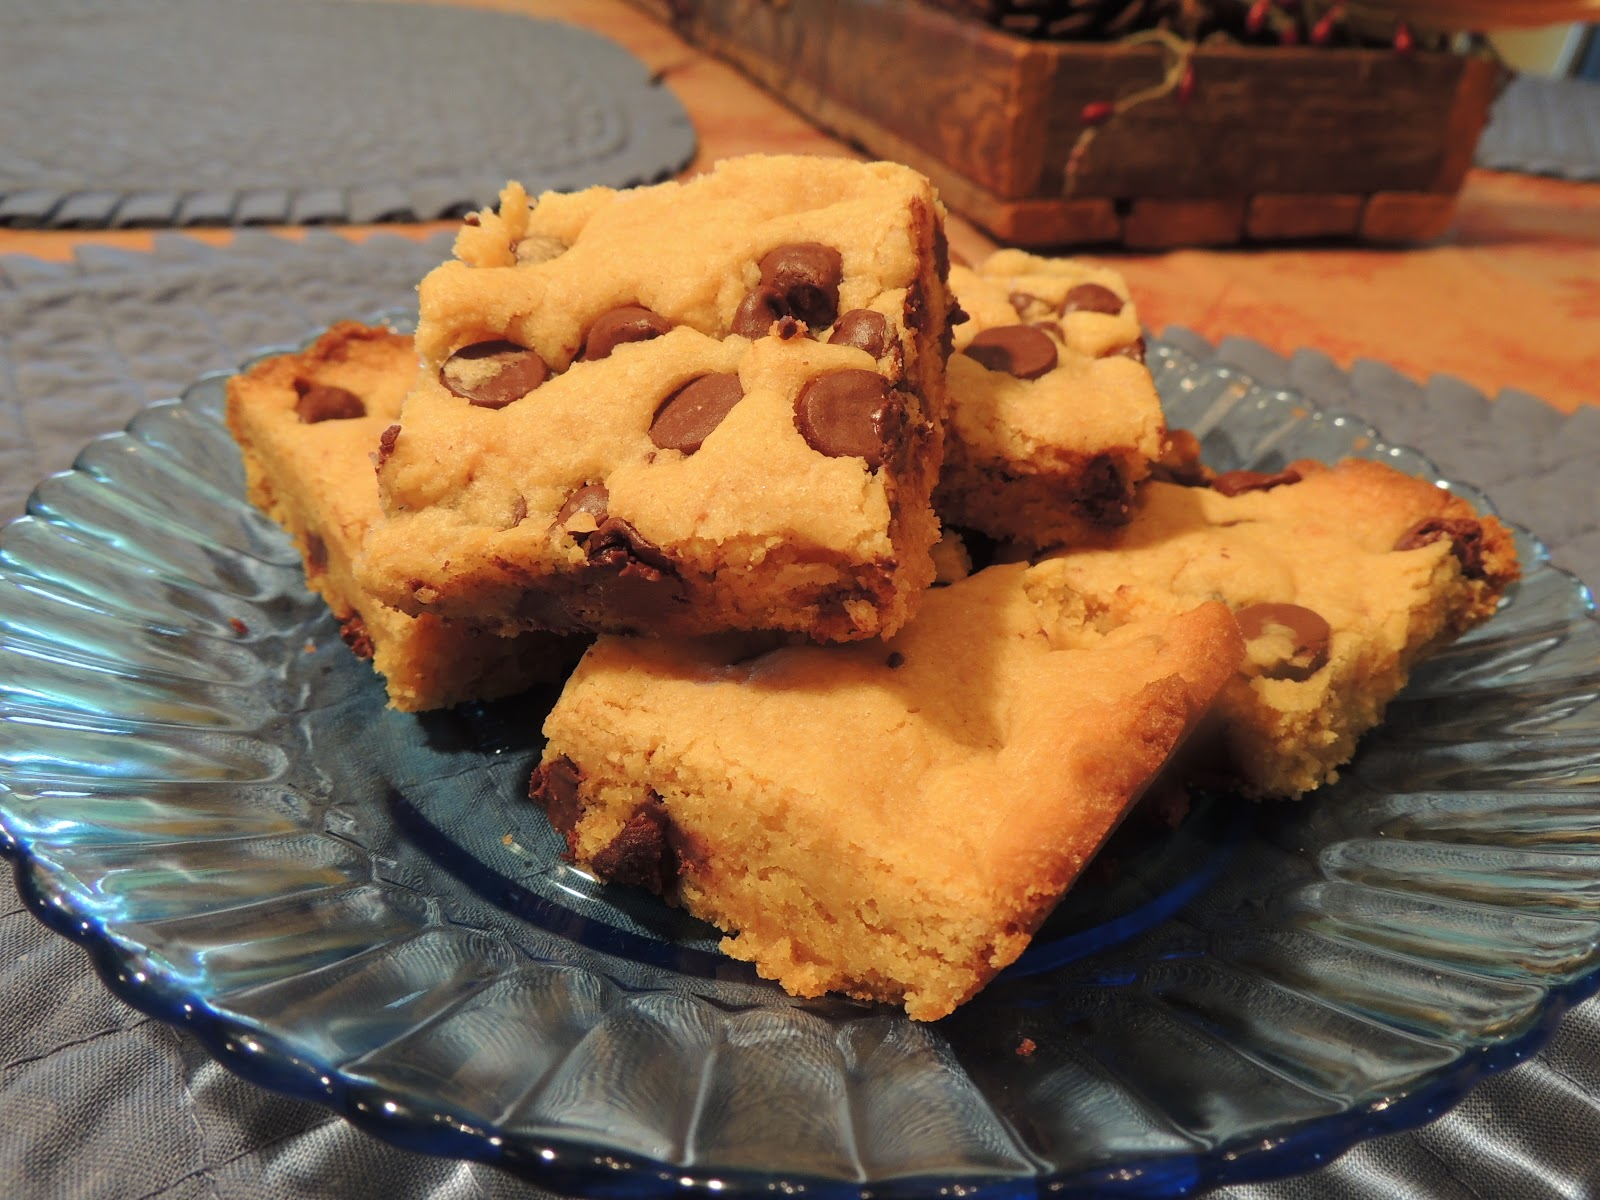 Jiffy Cake Mix Peanut Butter Cookies